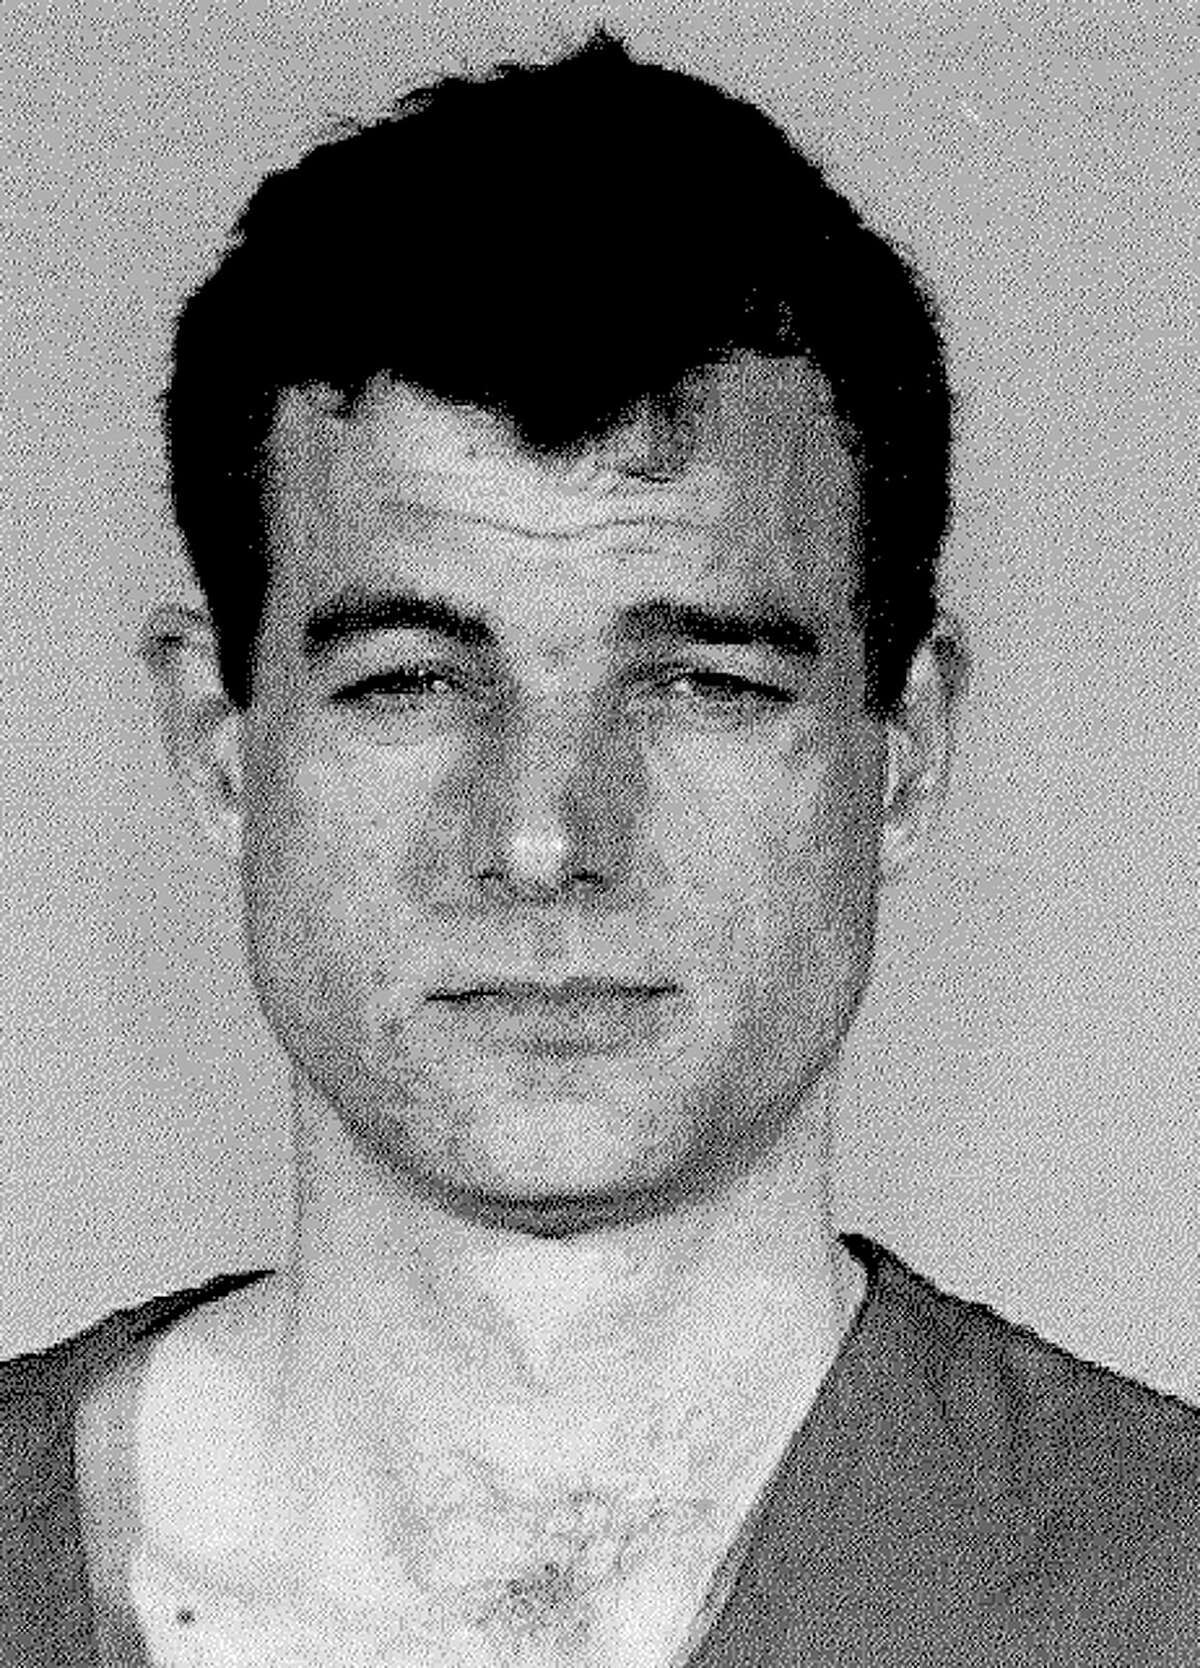 Ian Stawicki, pictured in a City of Seattle booking photo.